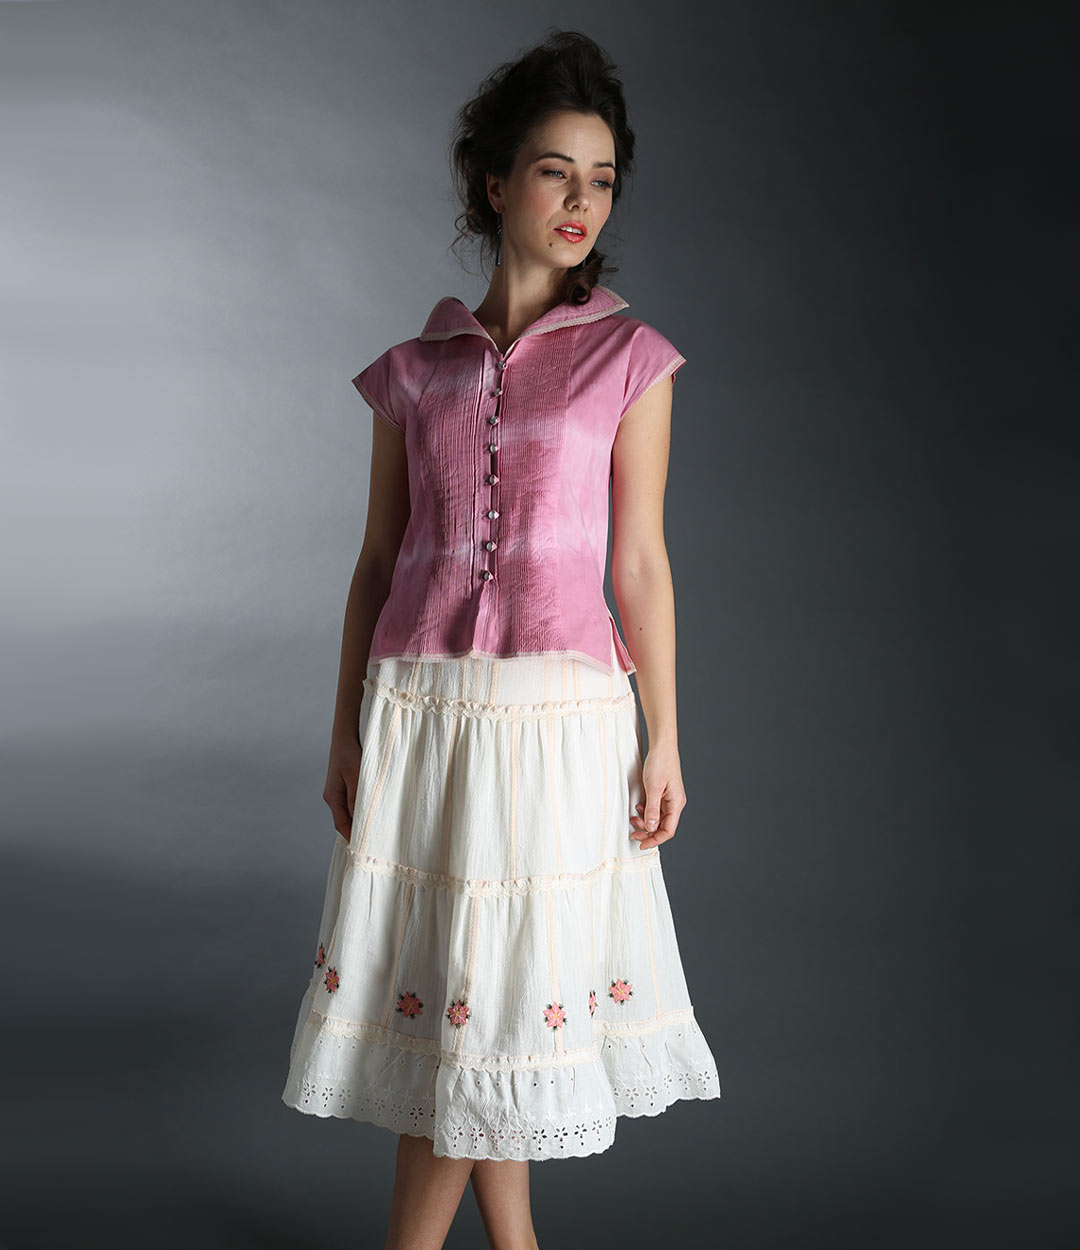 Rose top and skirt